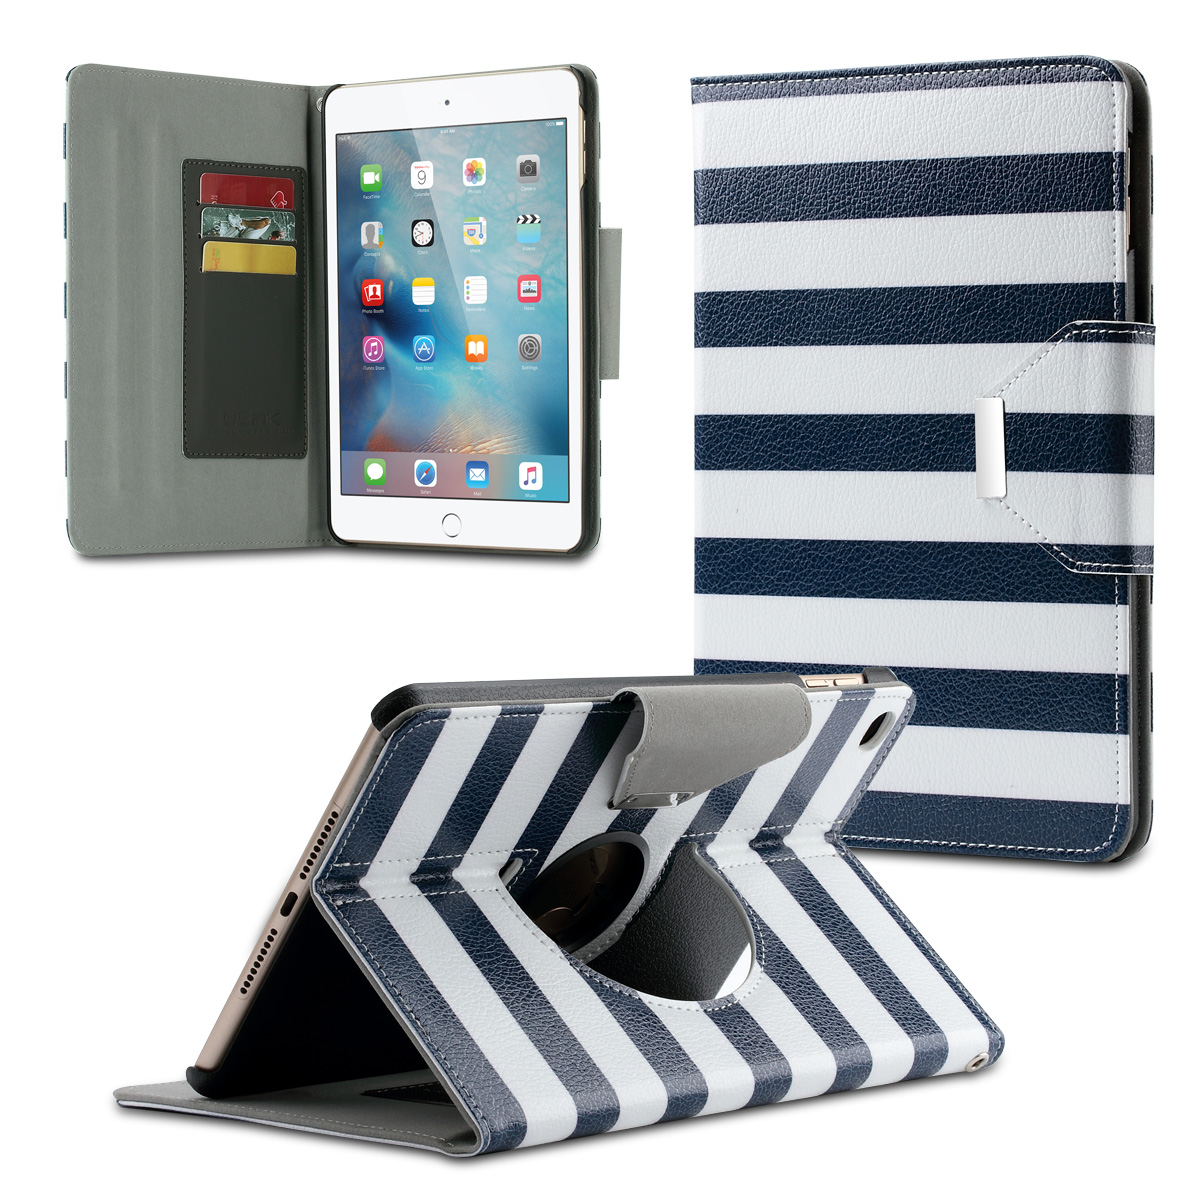 "For Apple iPad mini 4 case, ULAK 360 Rotating Case with Media Stand + Credit Card Slots for iPad mini 4 (7.9"" inch)(China (Mainland))"